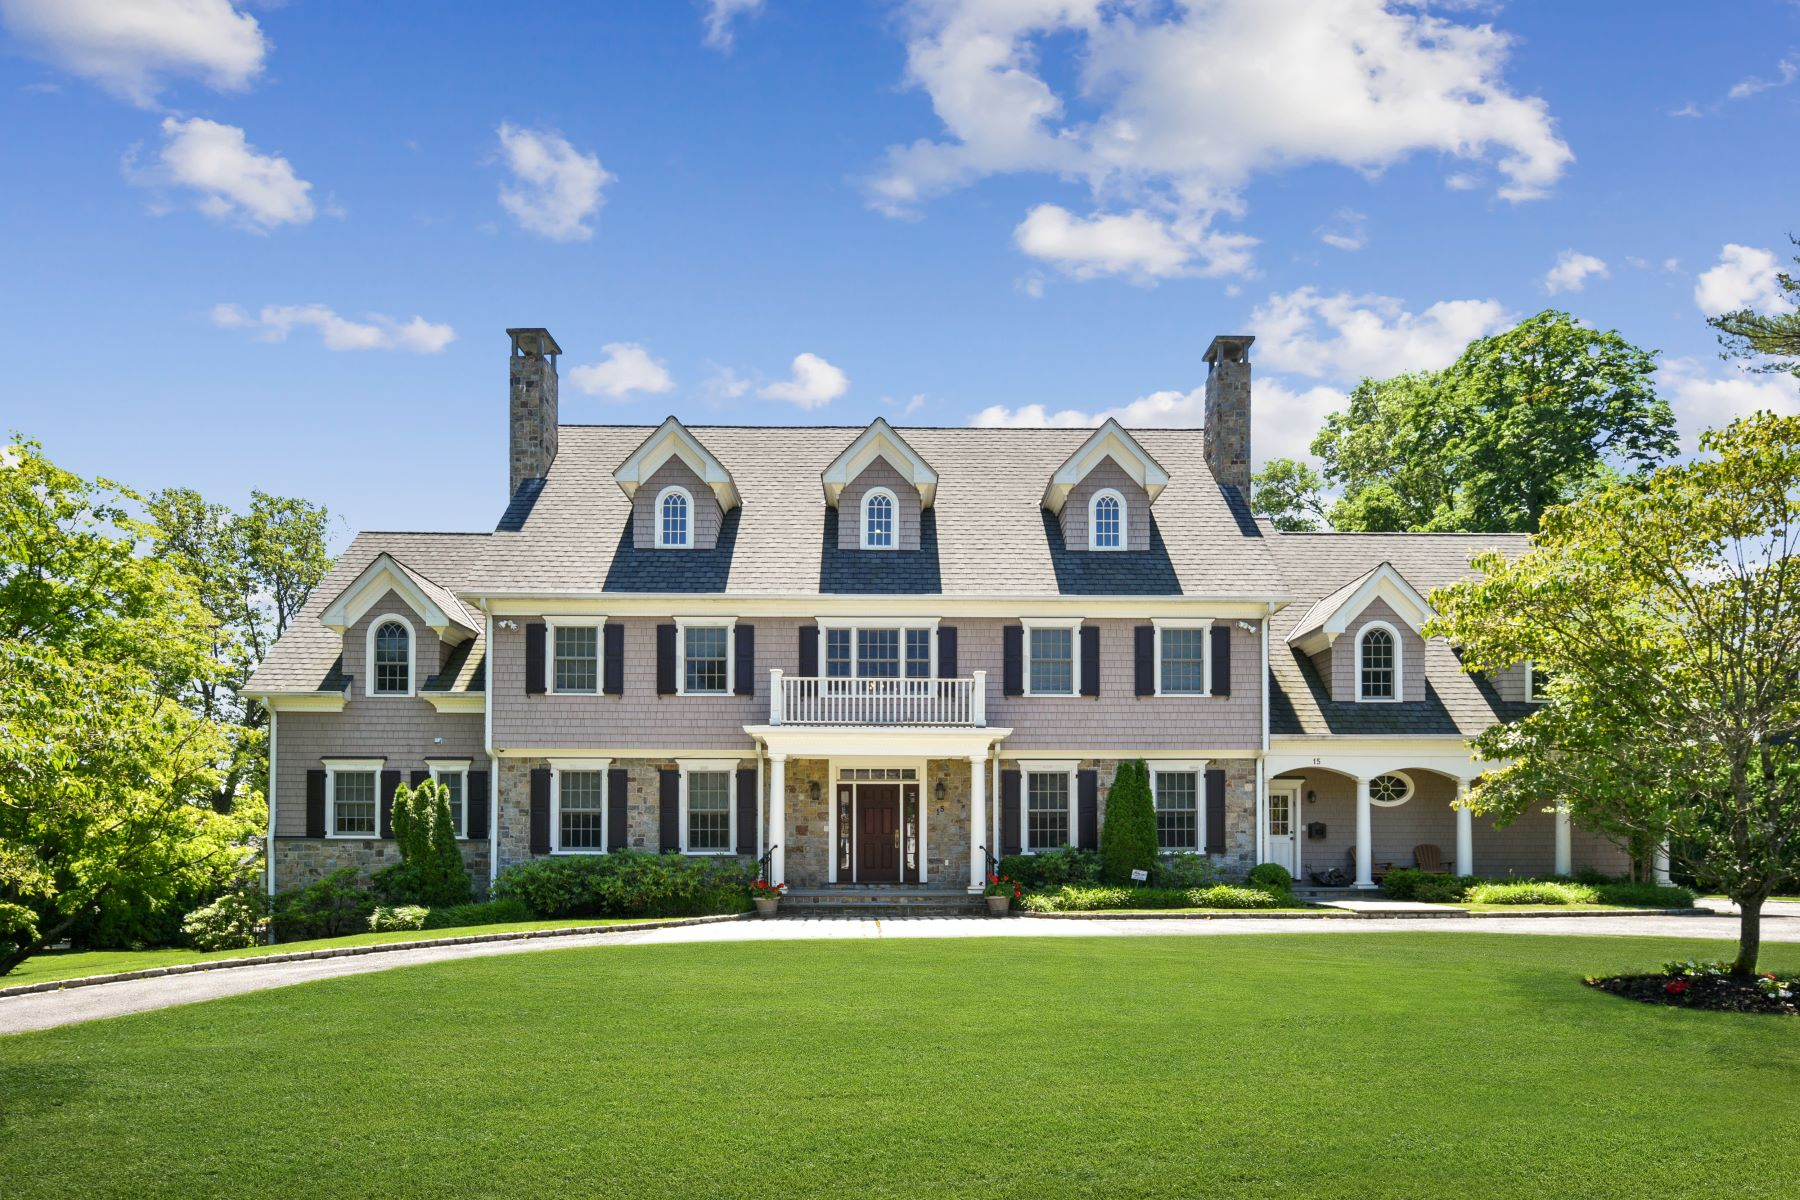 Single Family Homes for Active at Live like a Celebrity in this Contemporary Colonial 15 Wiltshire Road Scarsdale, New York 10583 United States